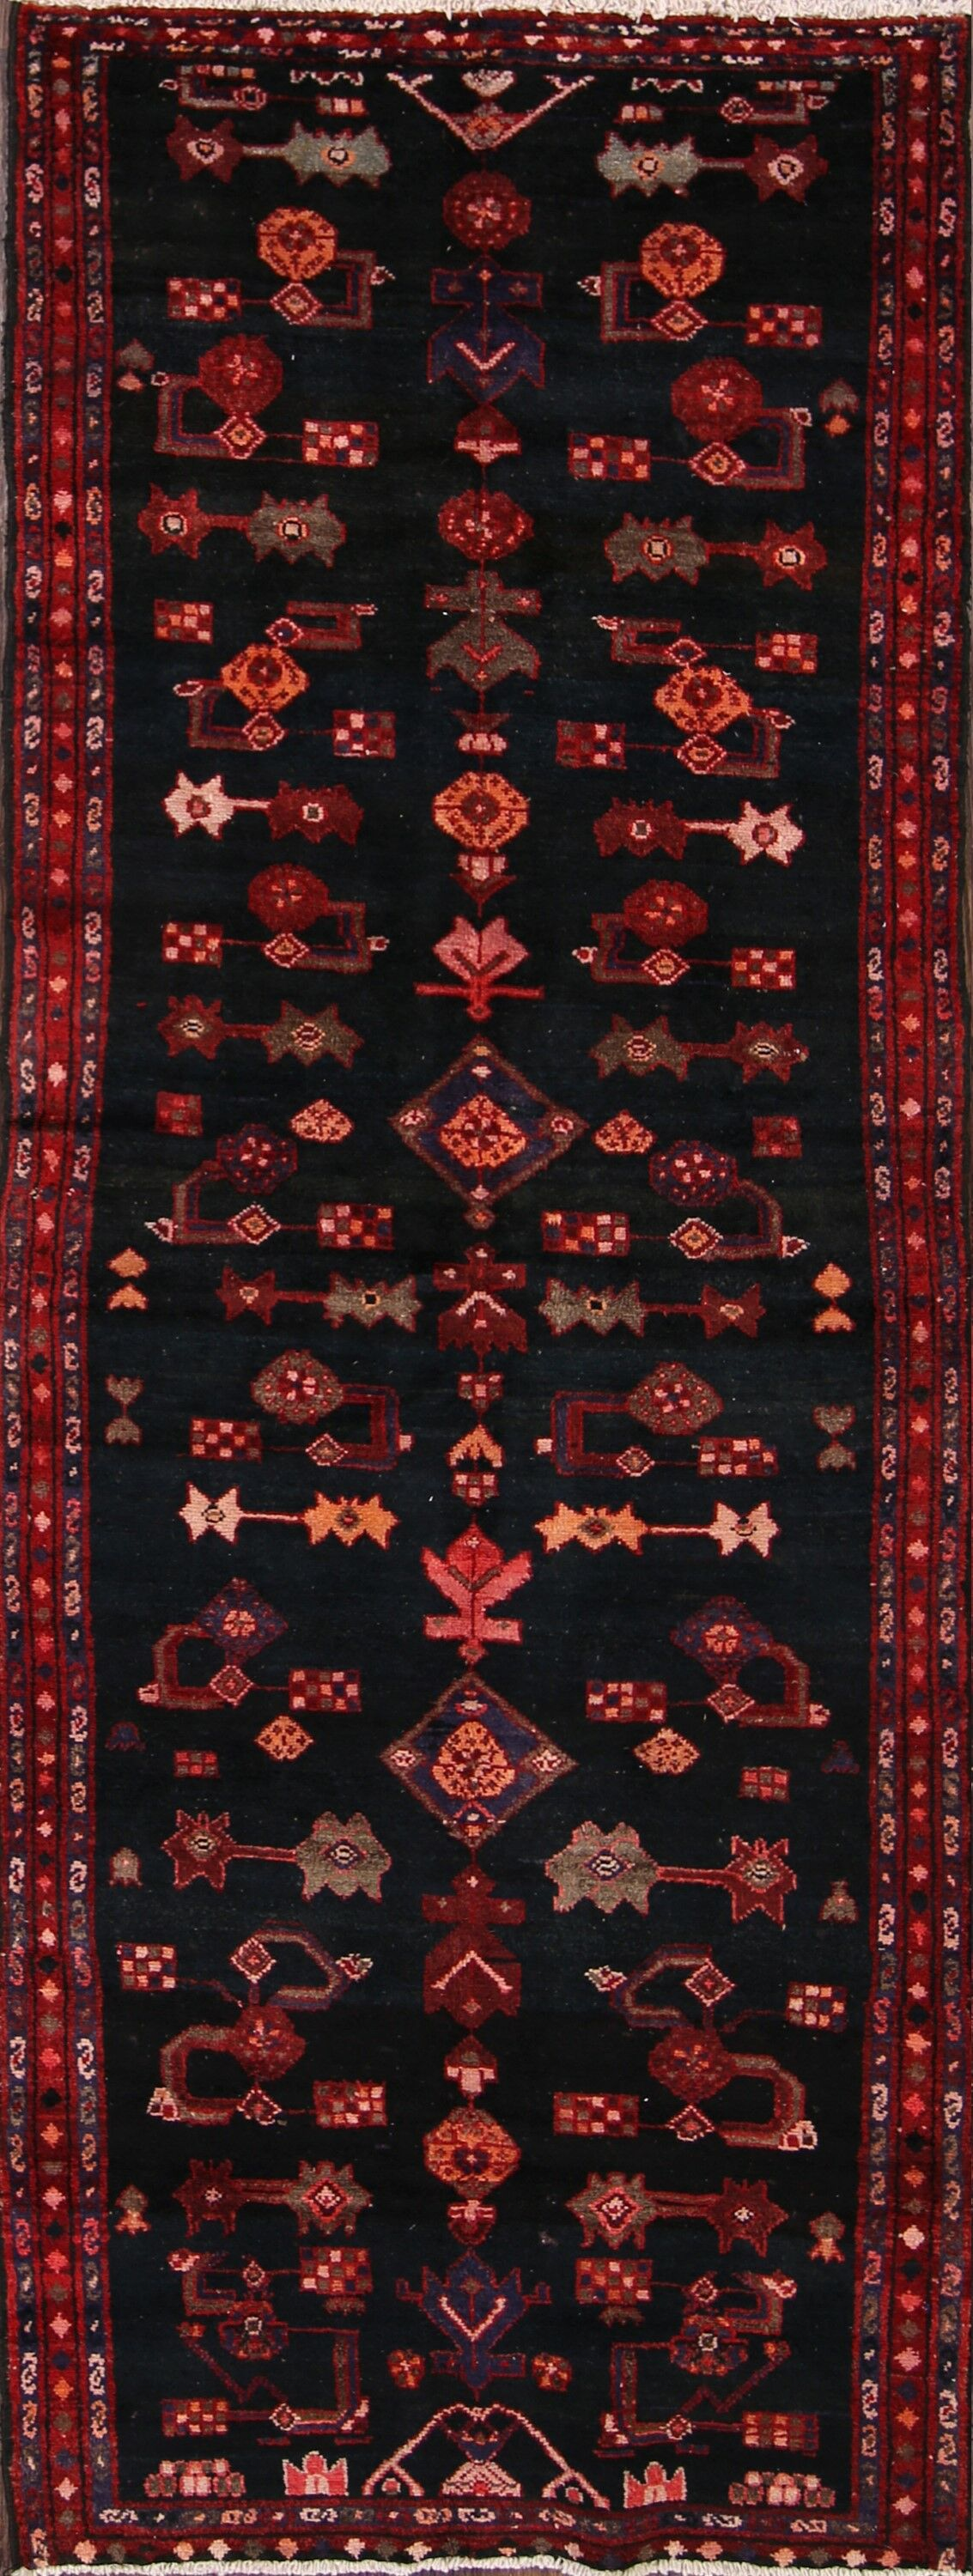 One-of-a-Kind Malayer Vintage Genuine Persian Hand-Knotted 3'6